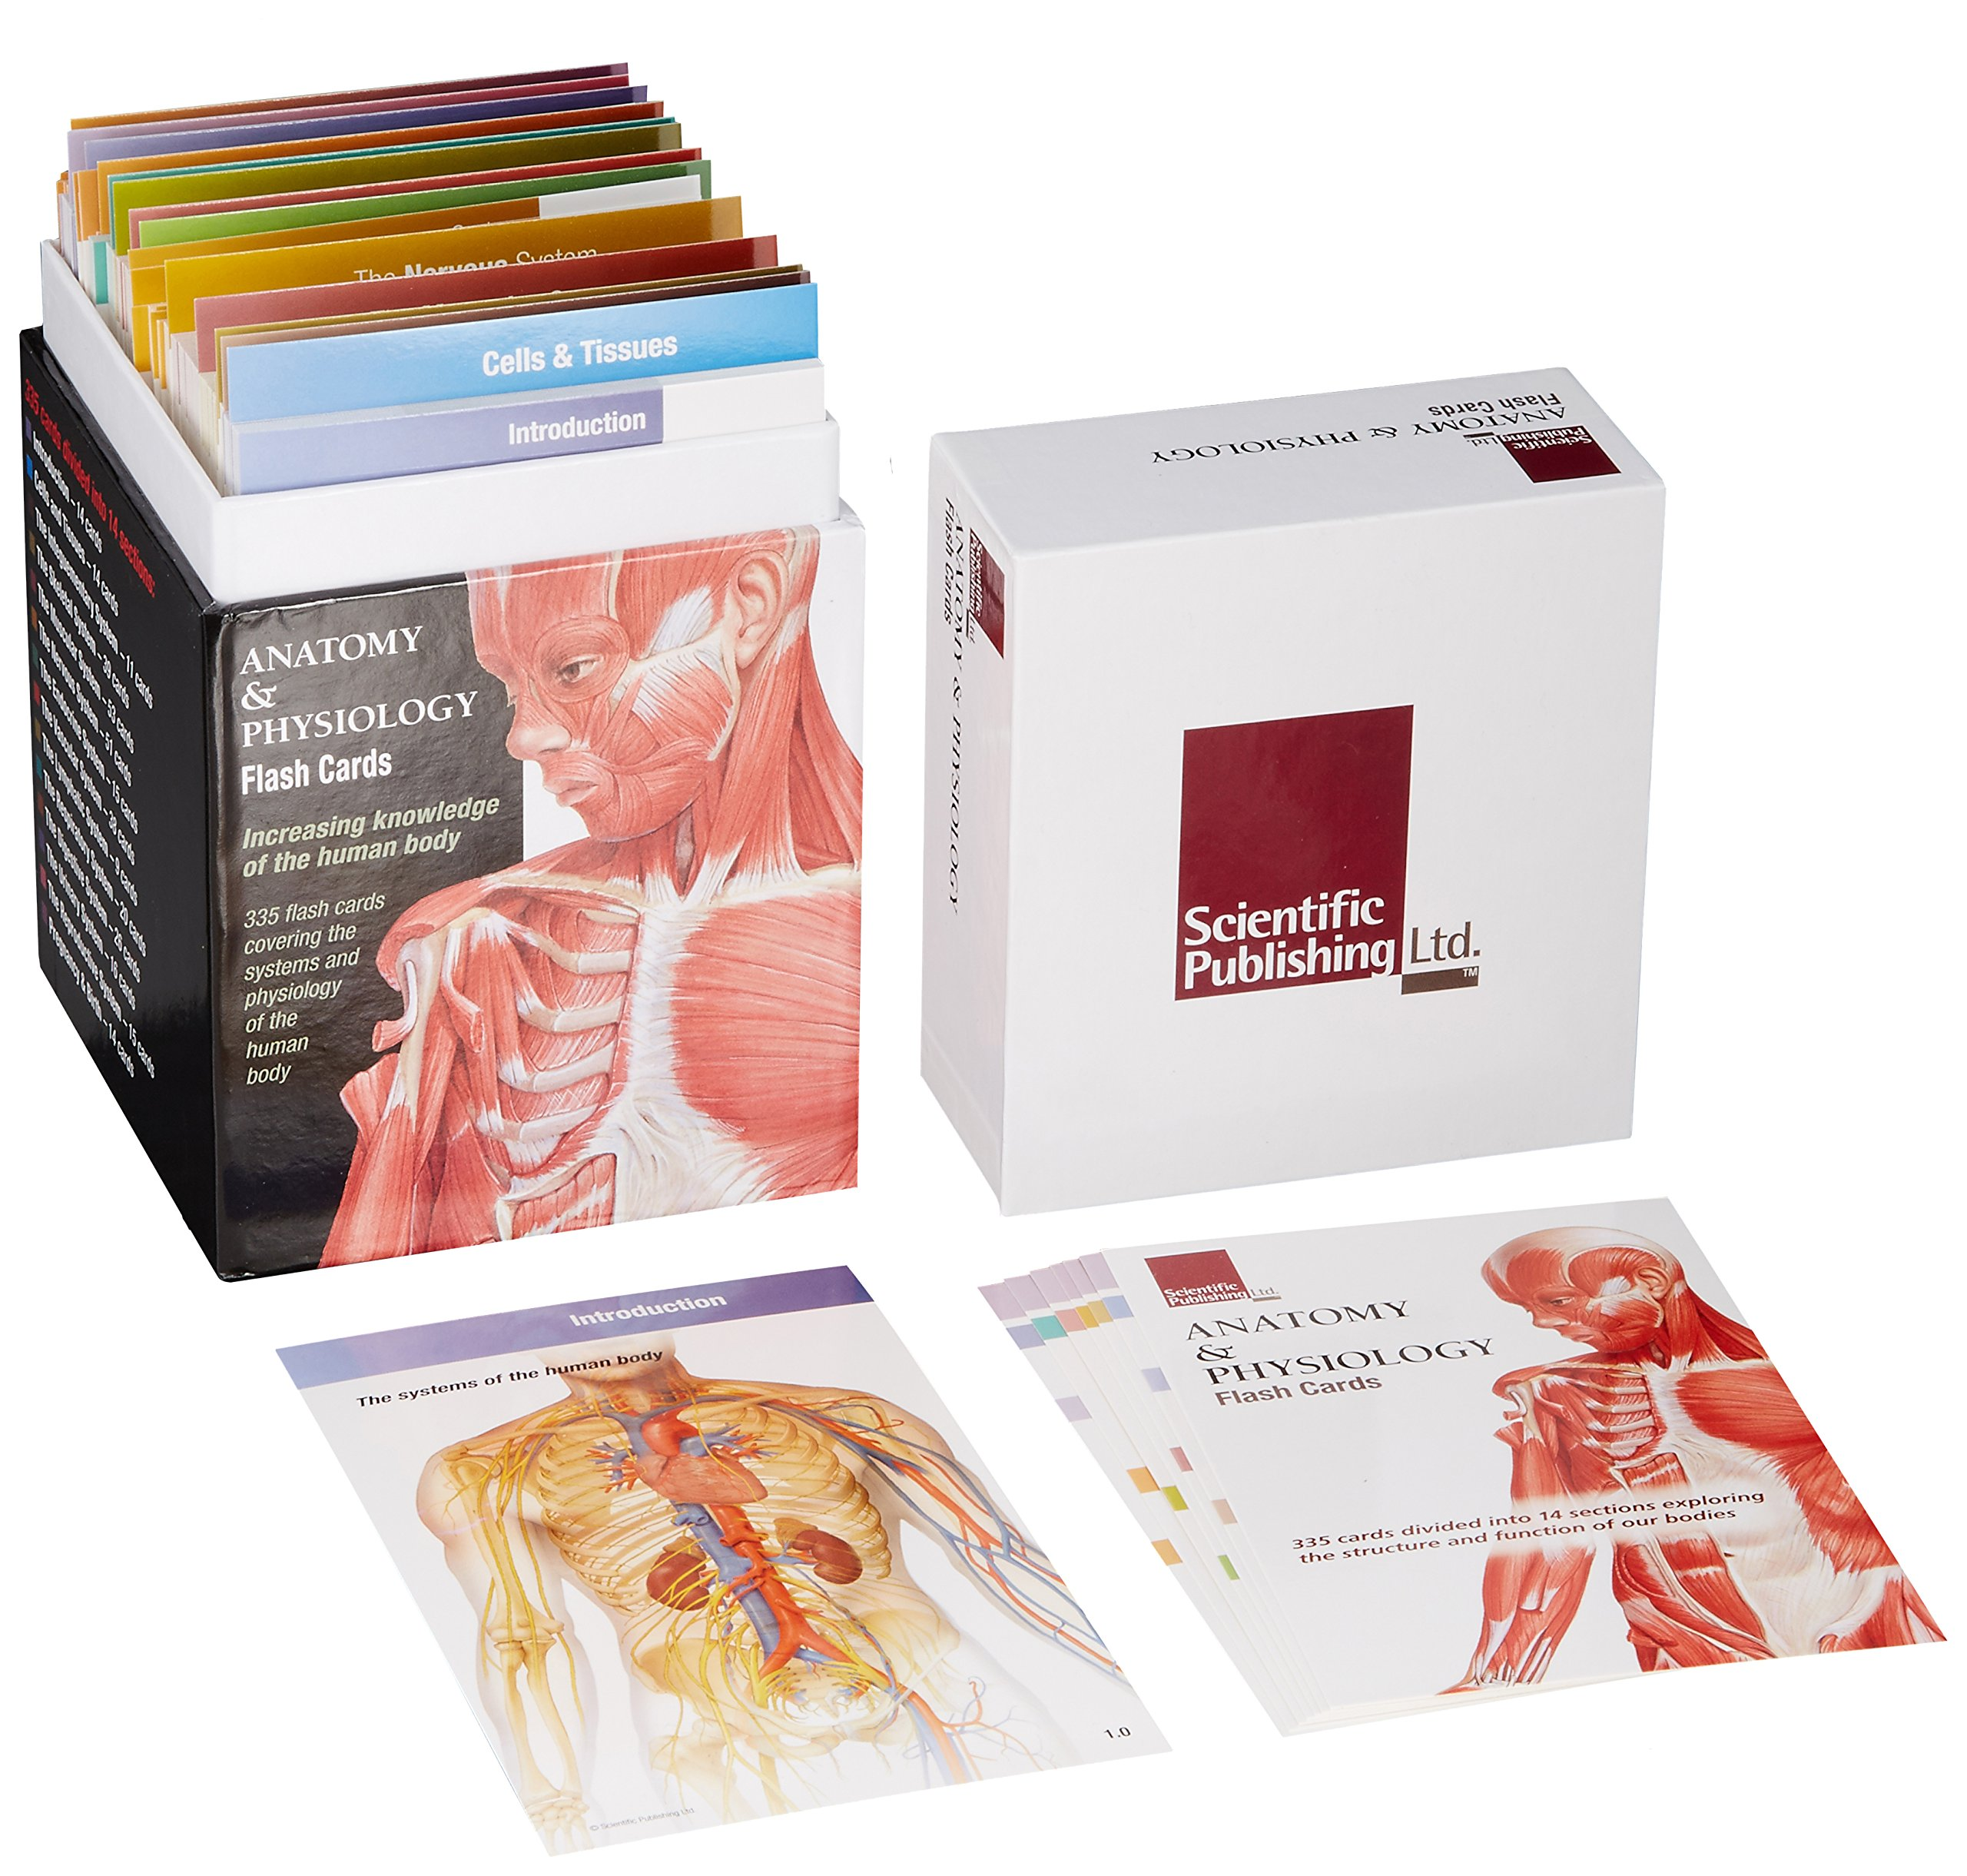 Anatomy and Physiology Flash Cards: Amazon.co.uk: Scientific ...